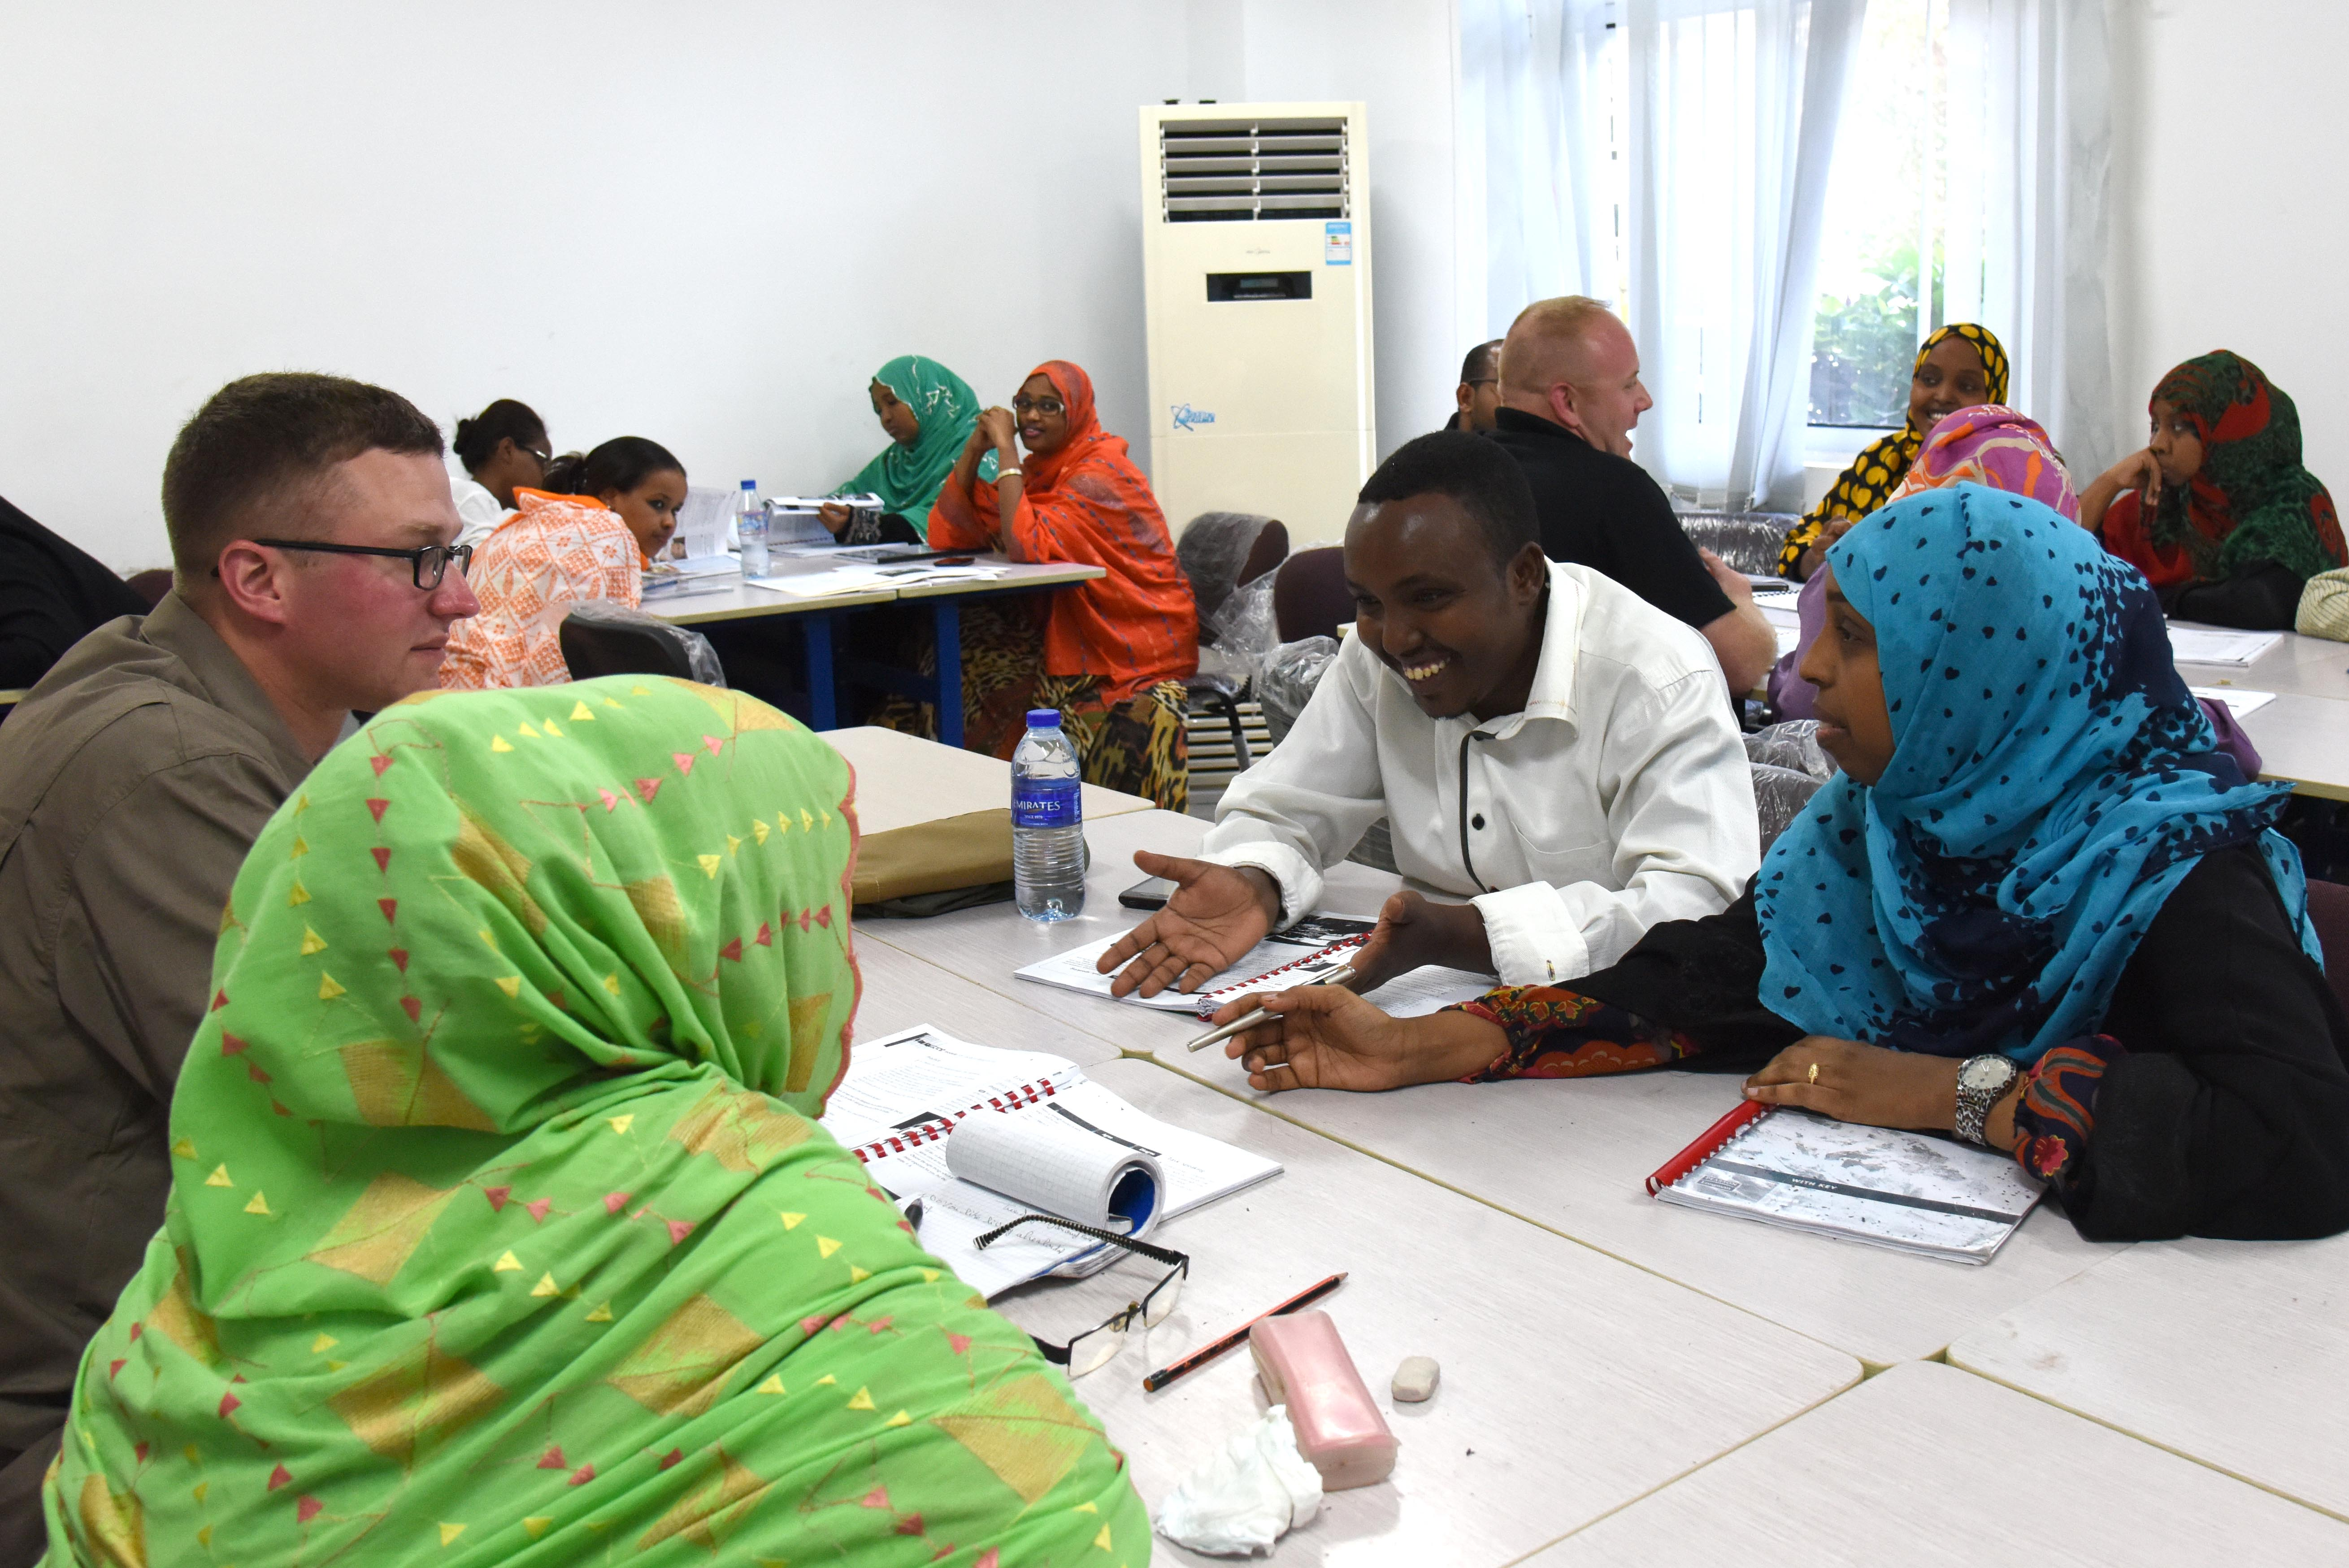 U.S. military members speak with Djiboutian students during an English discussion group at the Diplomatic Institute in Djibouti, Jan. 12, 2016. During the discussion groups, English language students practice their skills and learn more about the U.S. service members deployed to their country on a more personal level. (U.S. Air Force photo by Staff Sgt. Victoria Sneed)